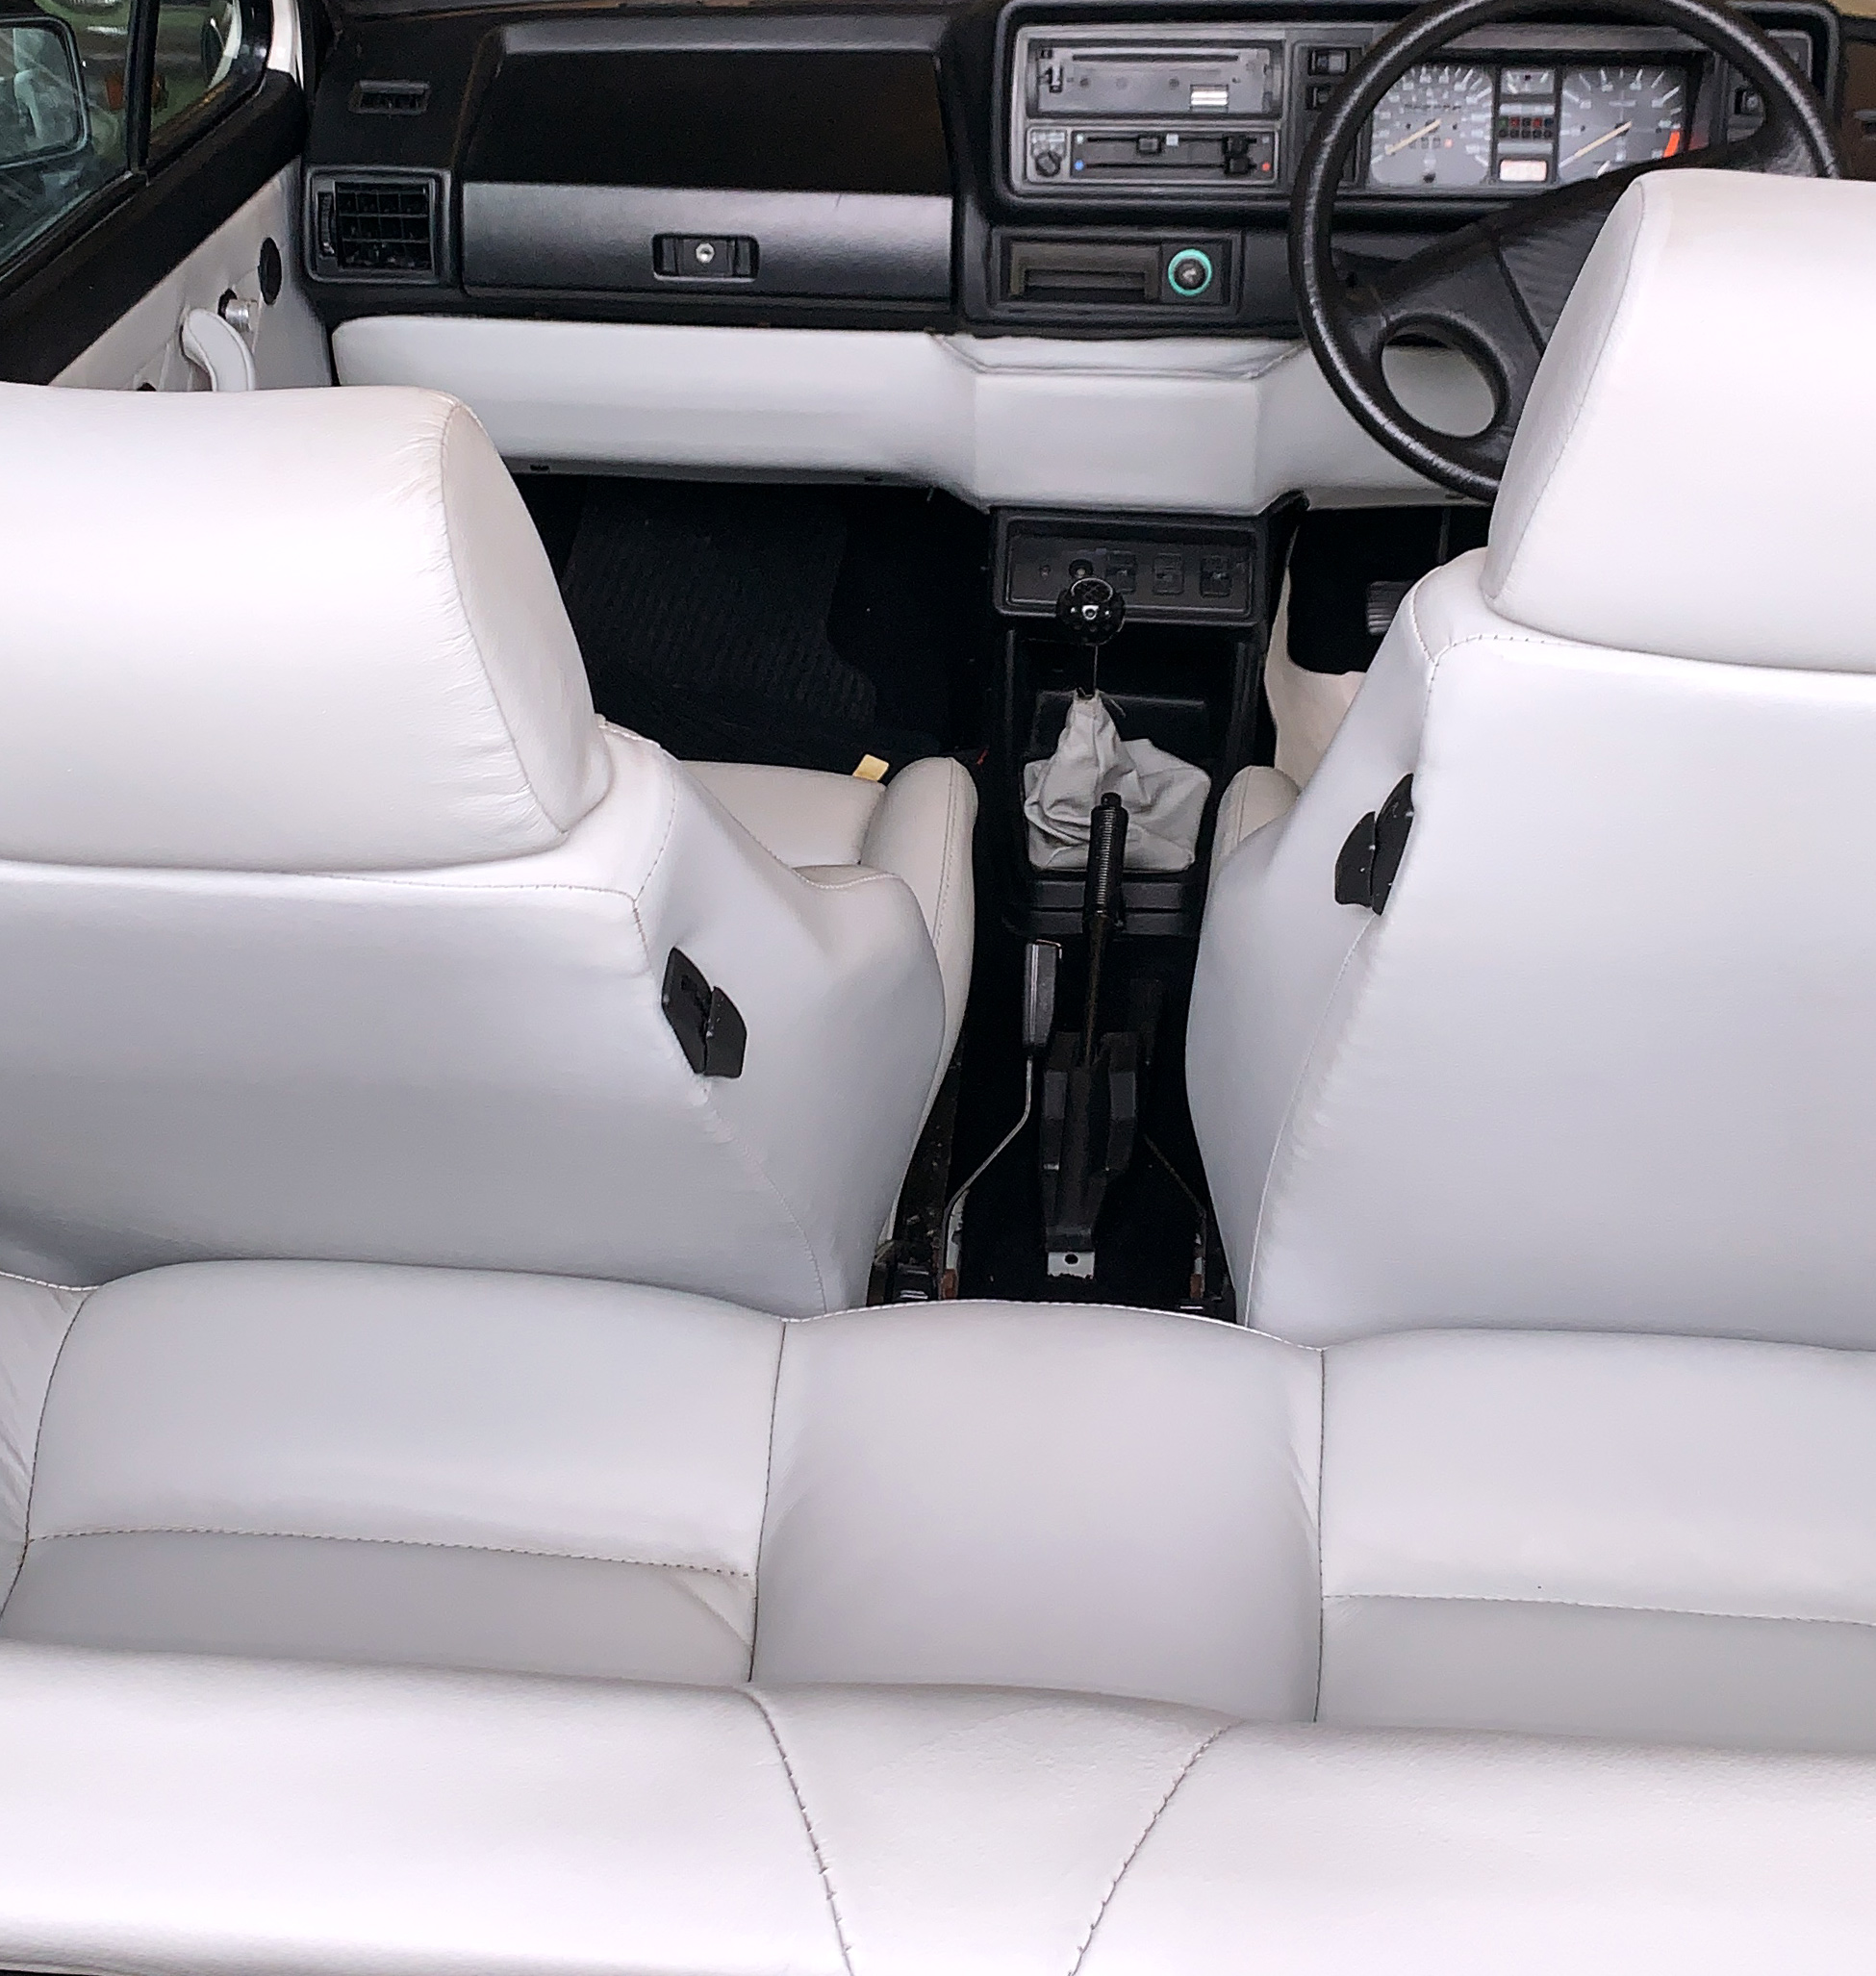 White+leather+car+upholstery%2C+door+panels+and+dash